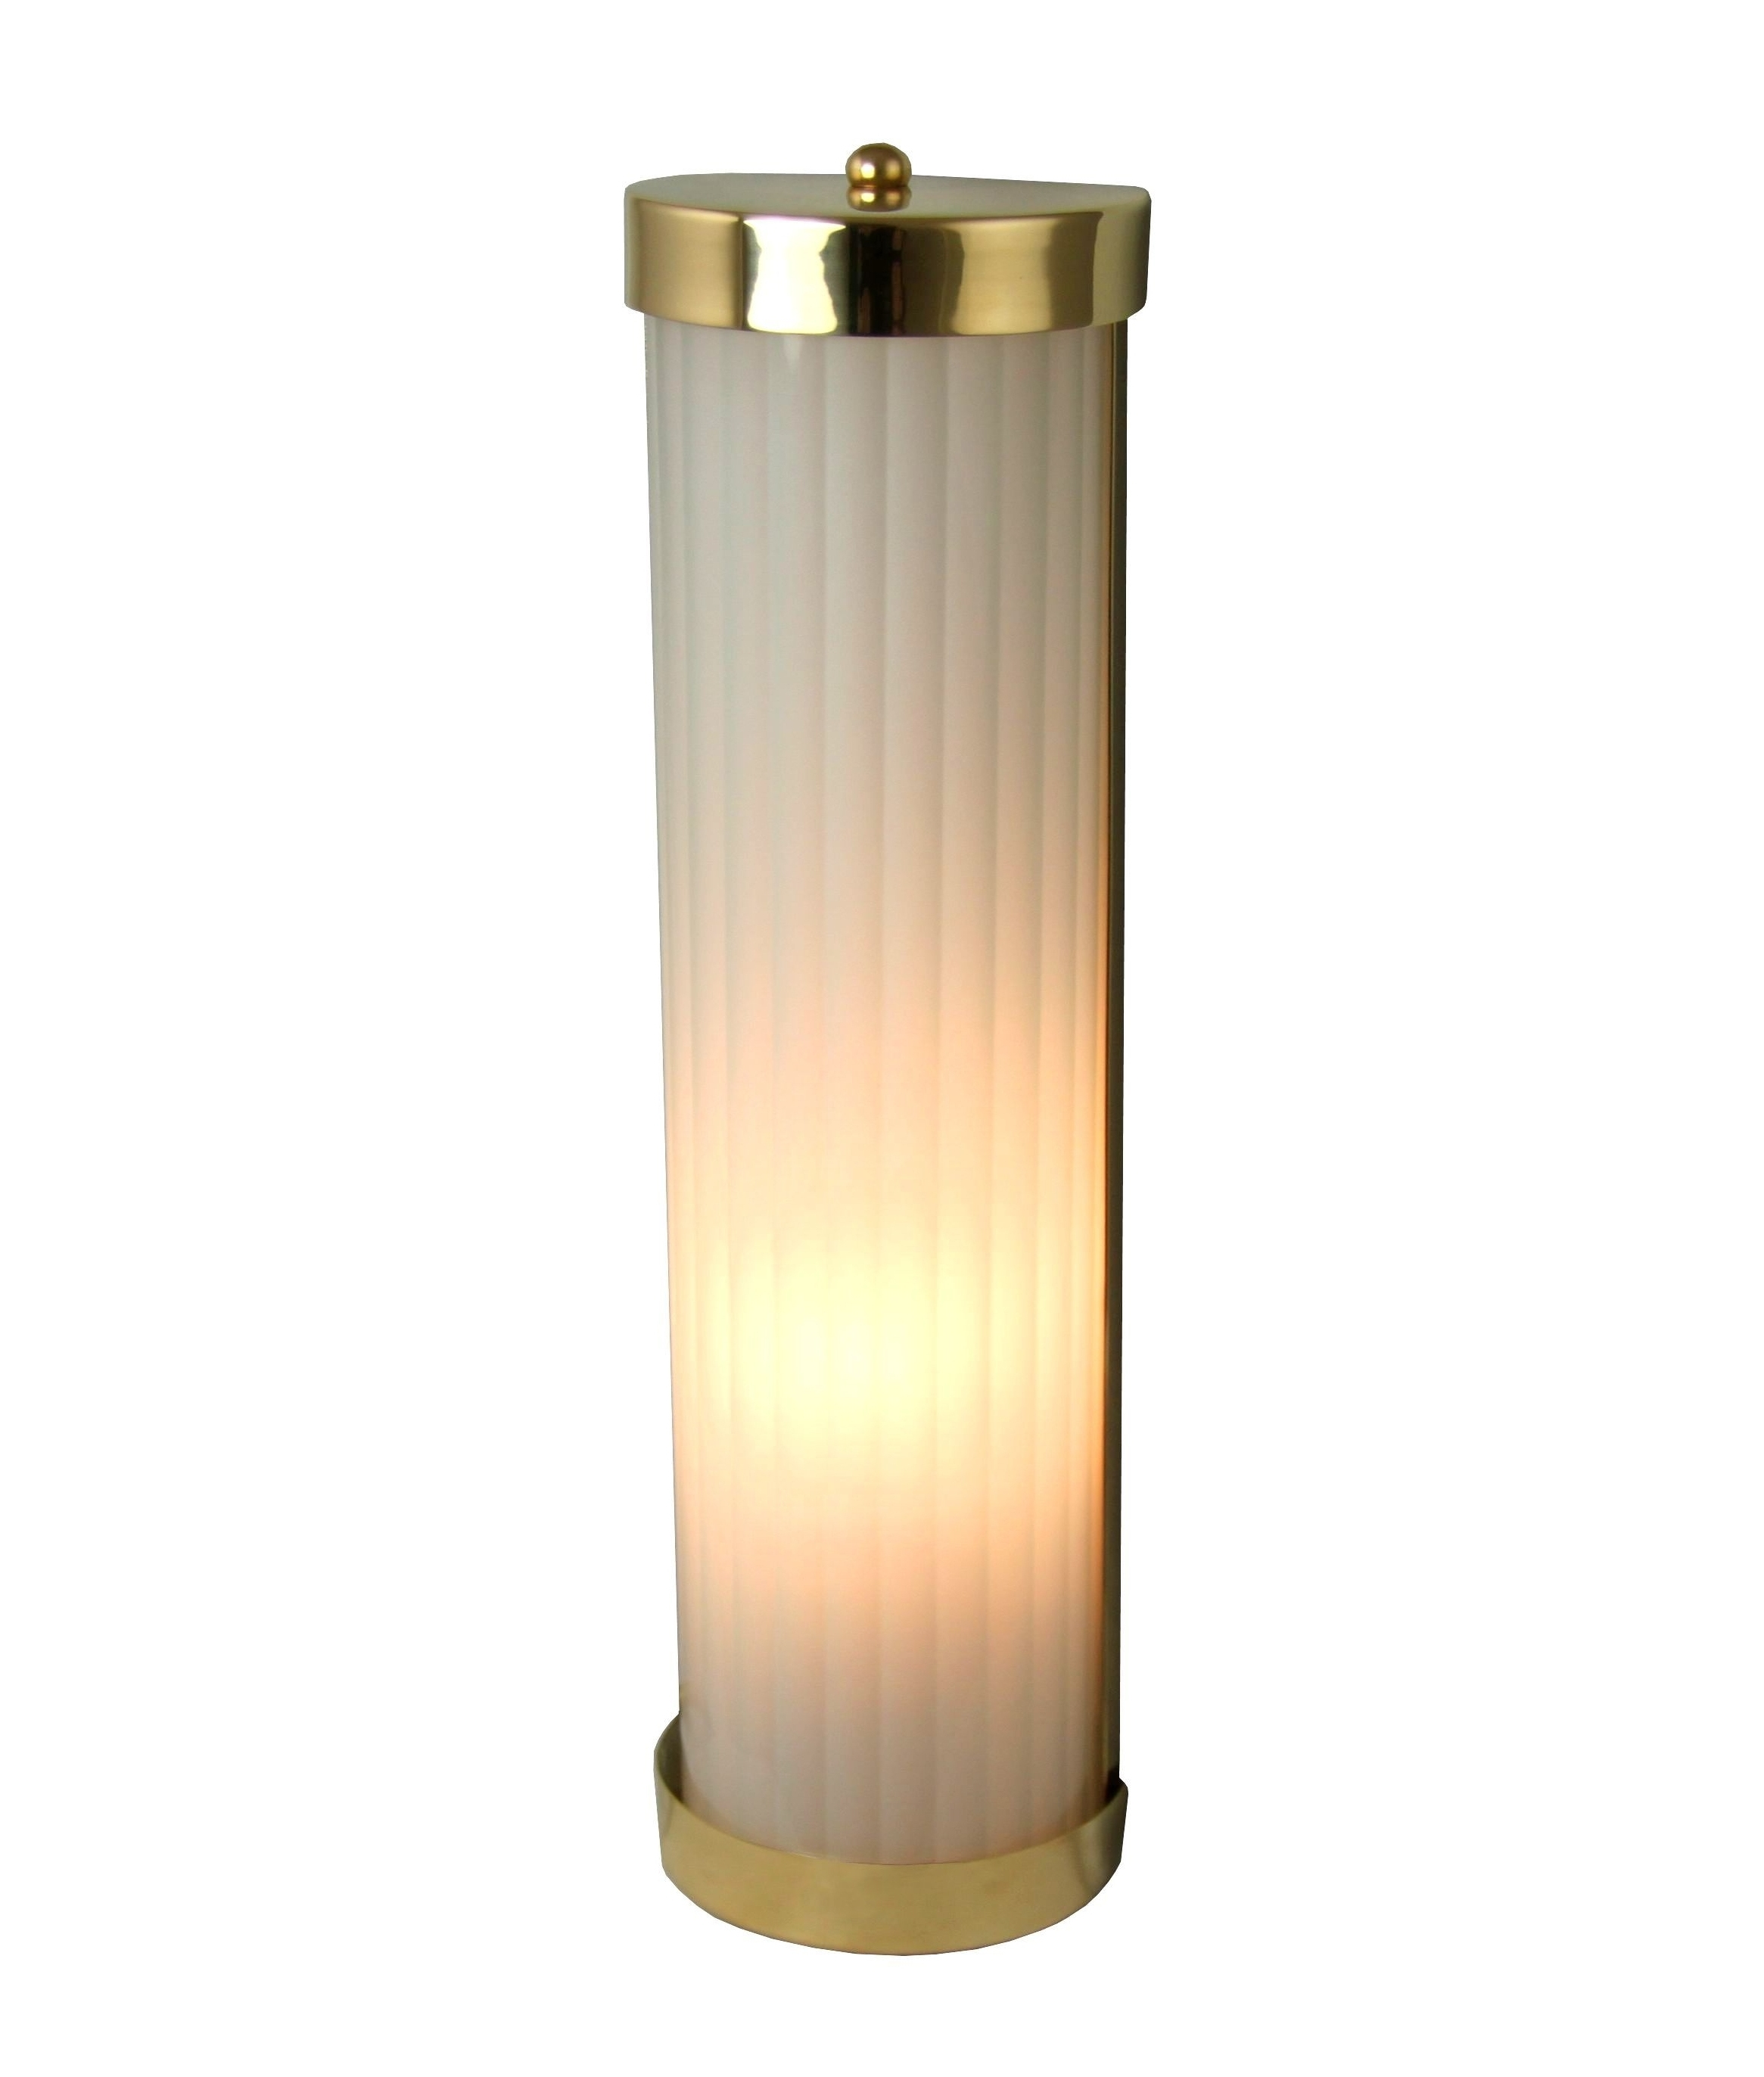 Reeded Glass Wall Lights In Copper Brass Or Chrome